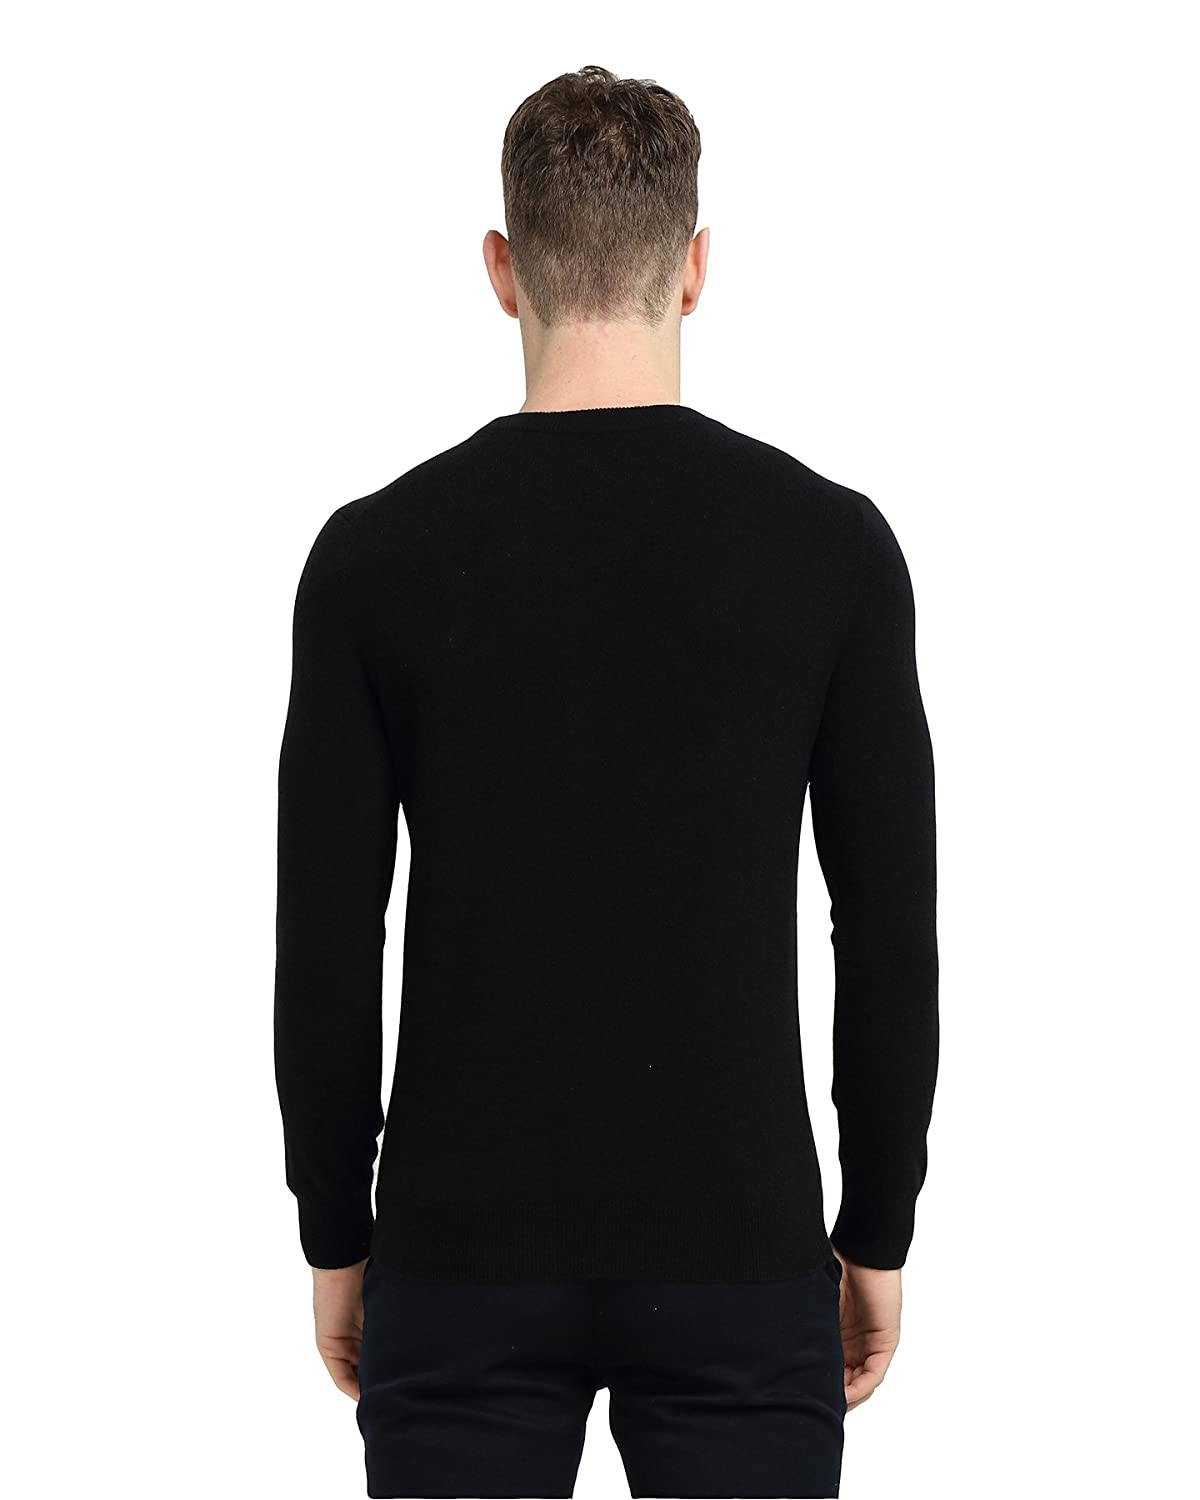 7bb08fc2 MIUK 2017 New Men's 100% Cashmere Sweater Round Neck Simple Basic Slim  Pullovers